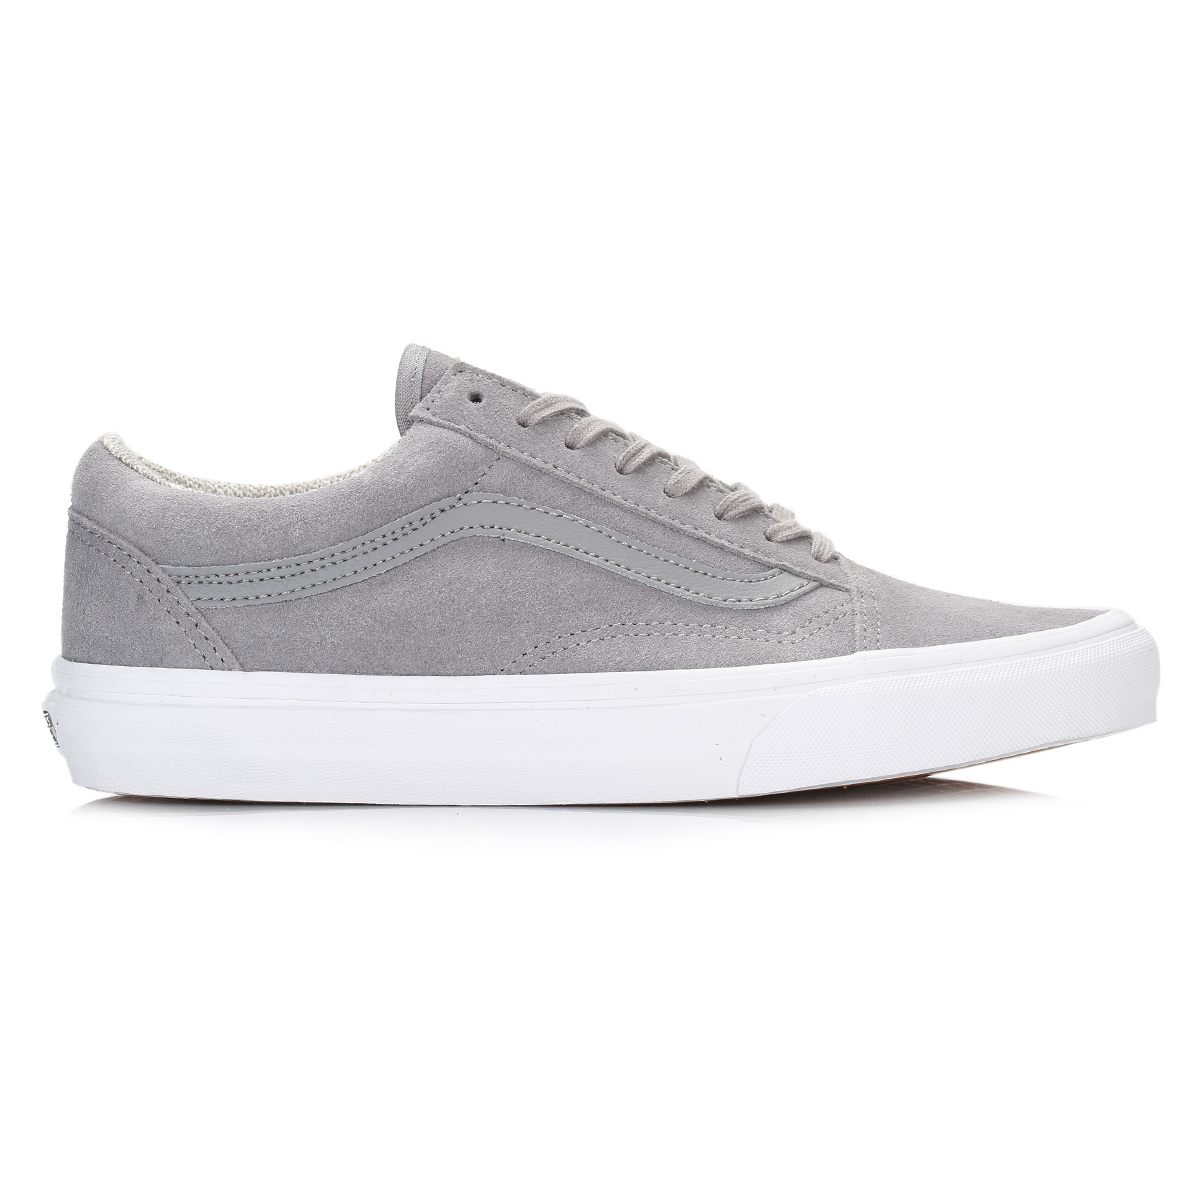 35515f3beba82a Buy vans old skool drizzle